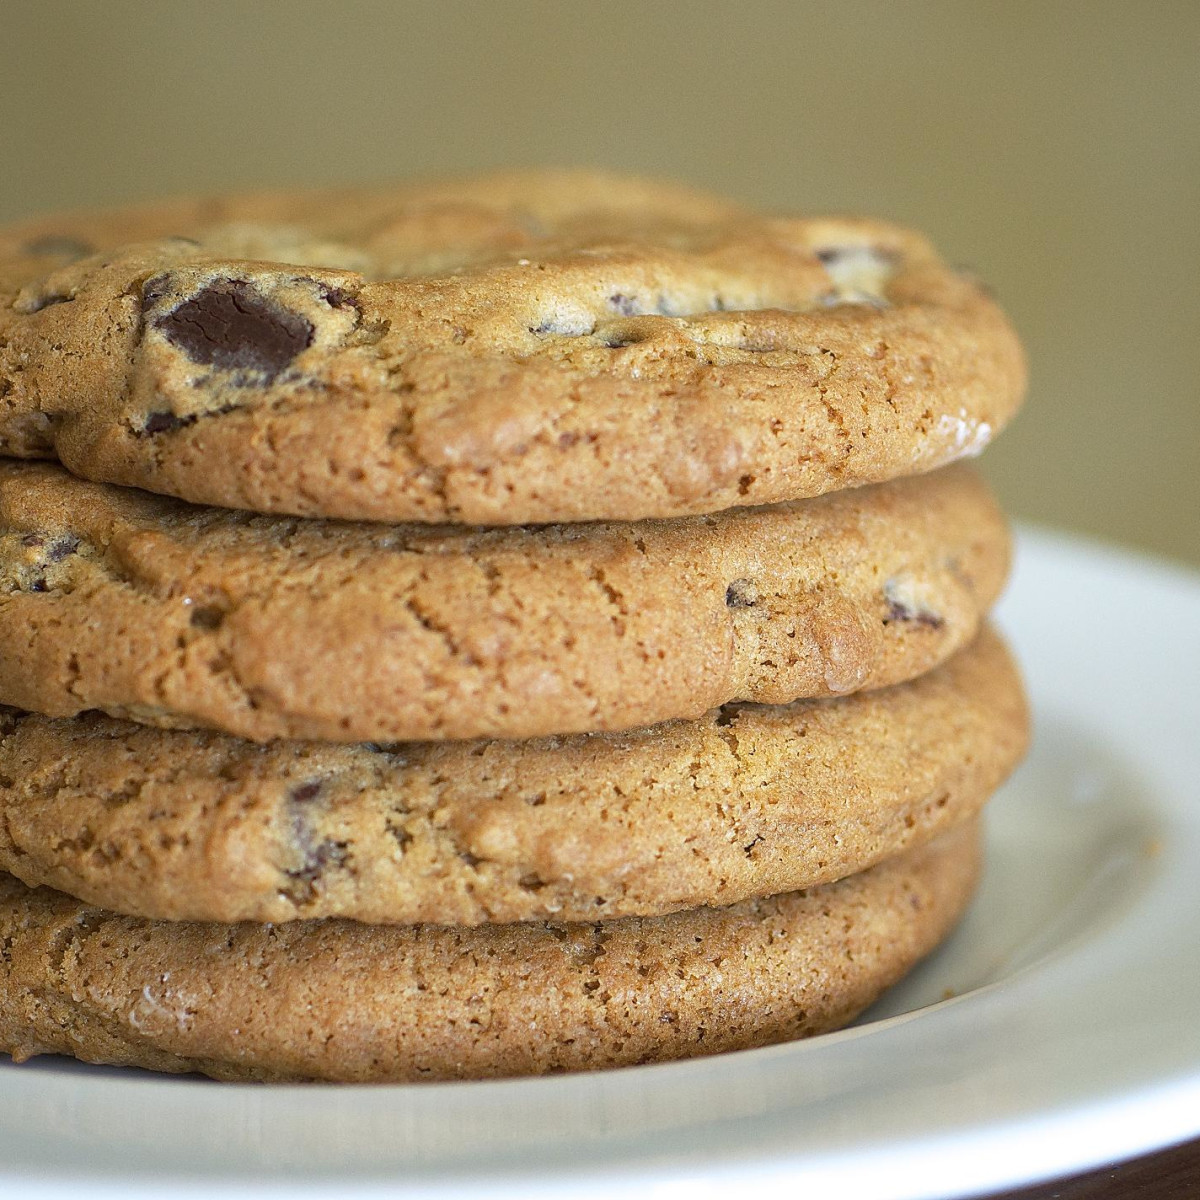 Ooh La La bakery chocolate chip cookies